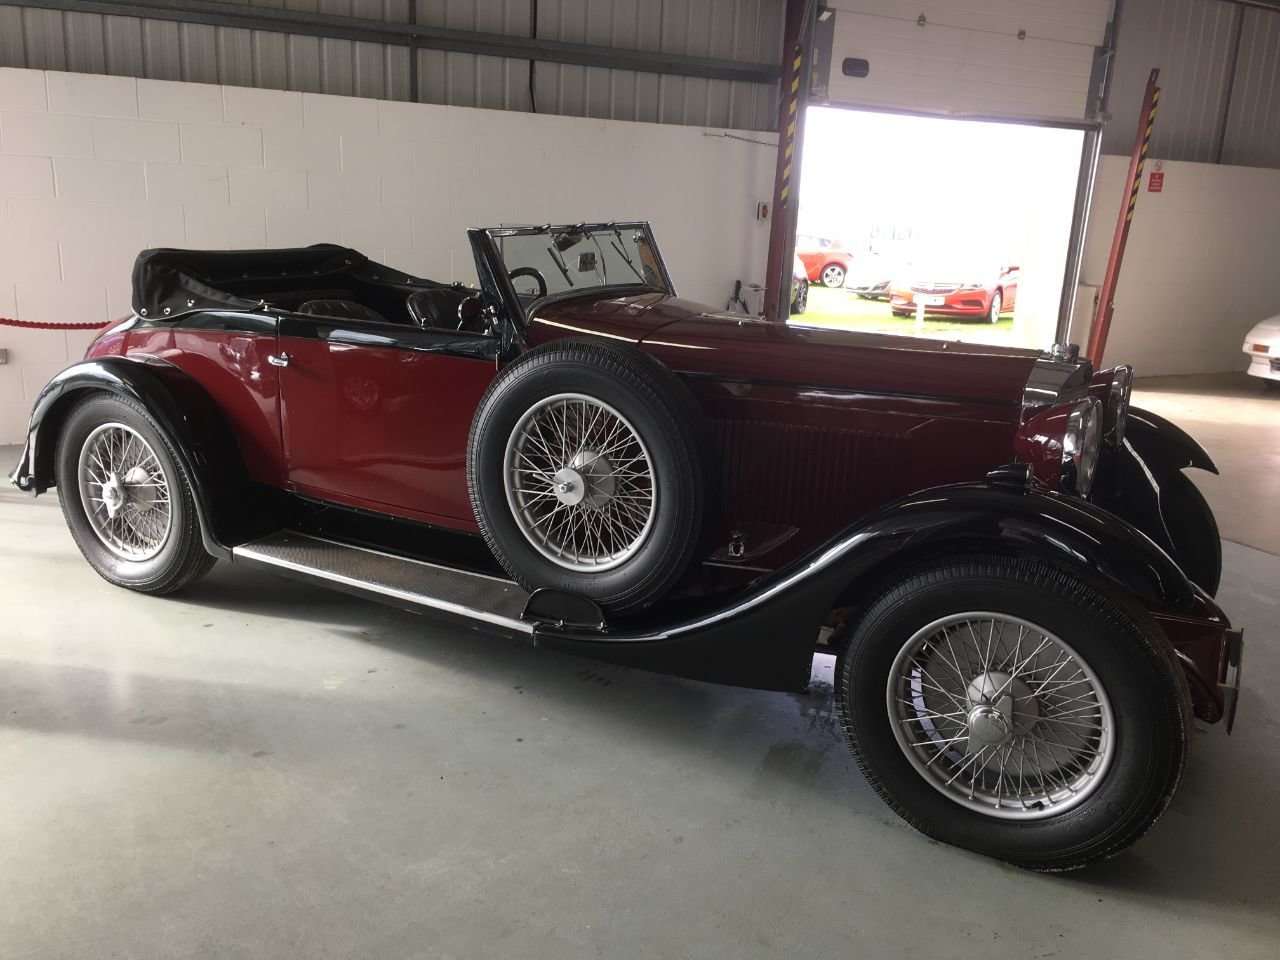 1932 Sunbeam 20 drophead coupe For Sale (picture 4 of 4)